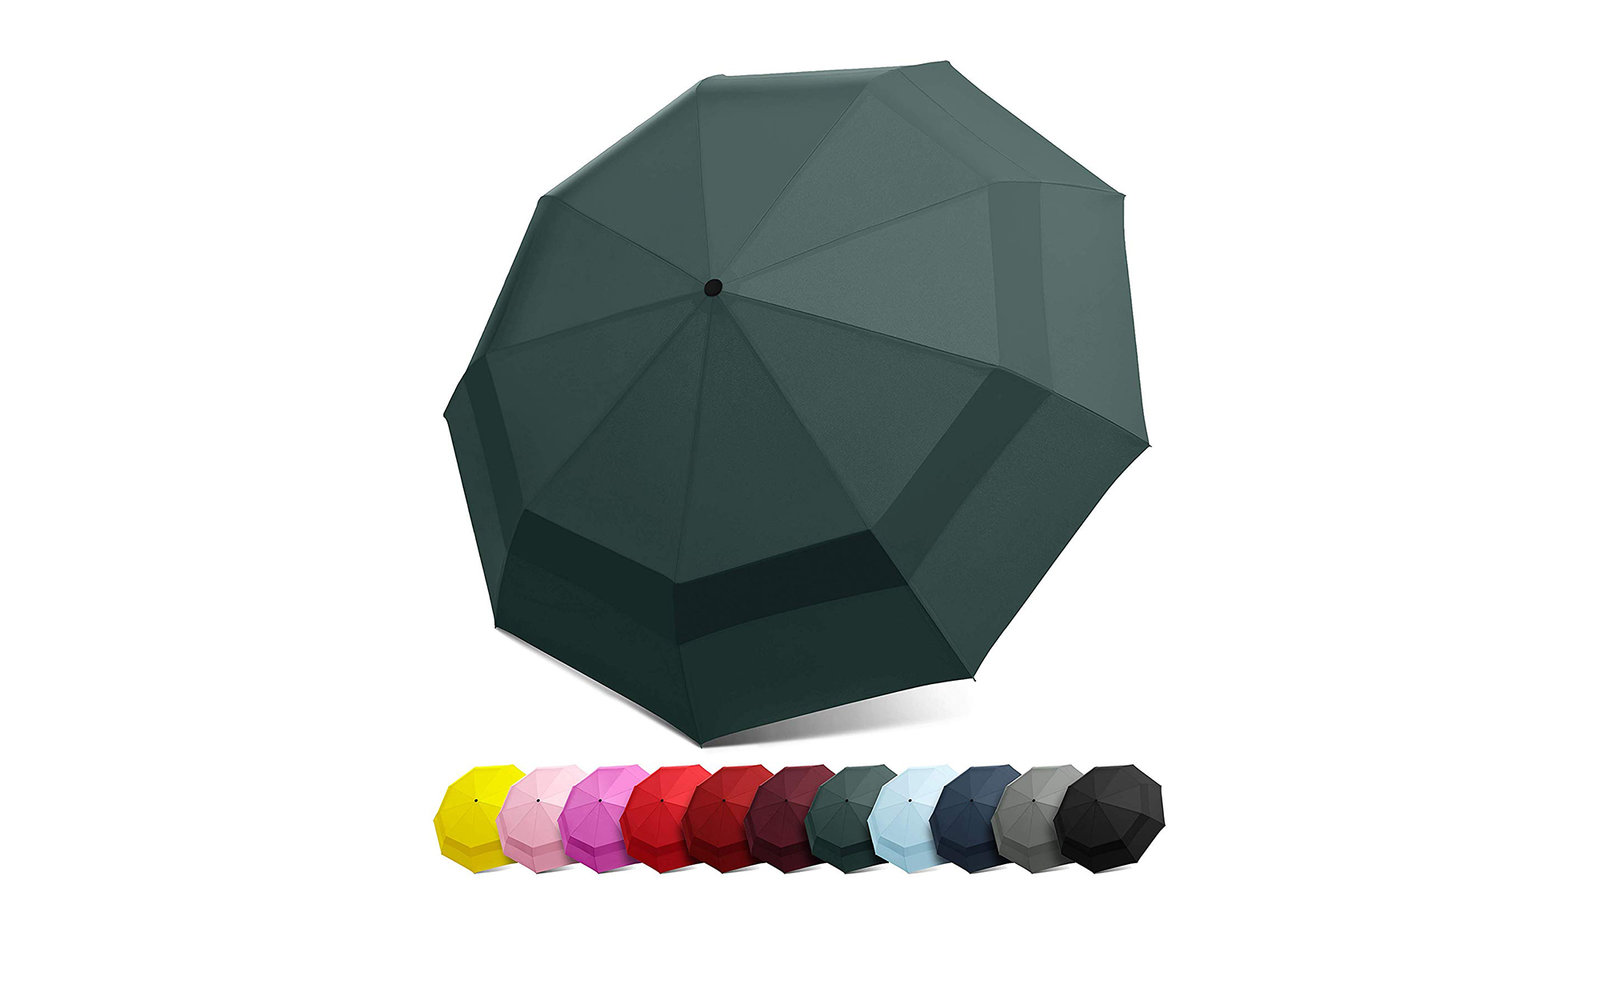 c0e08276e754 The Best Travel Umbrellas That Fit in Your Carry-on Bag | Travel + ...